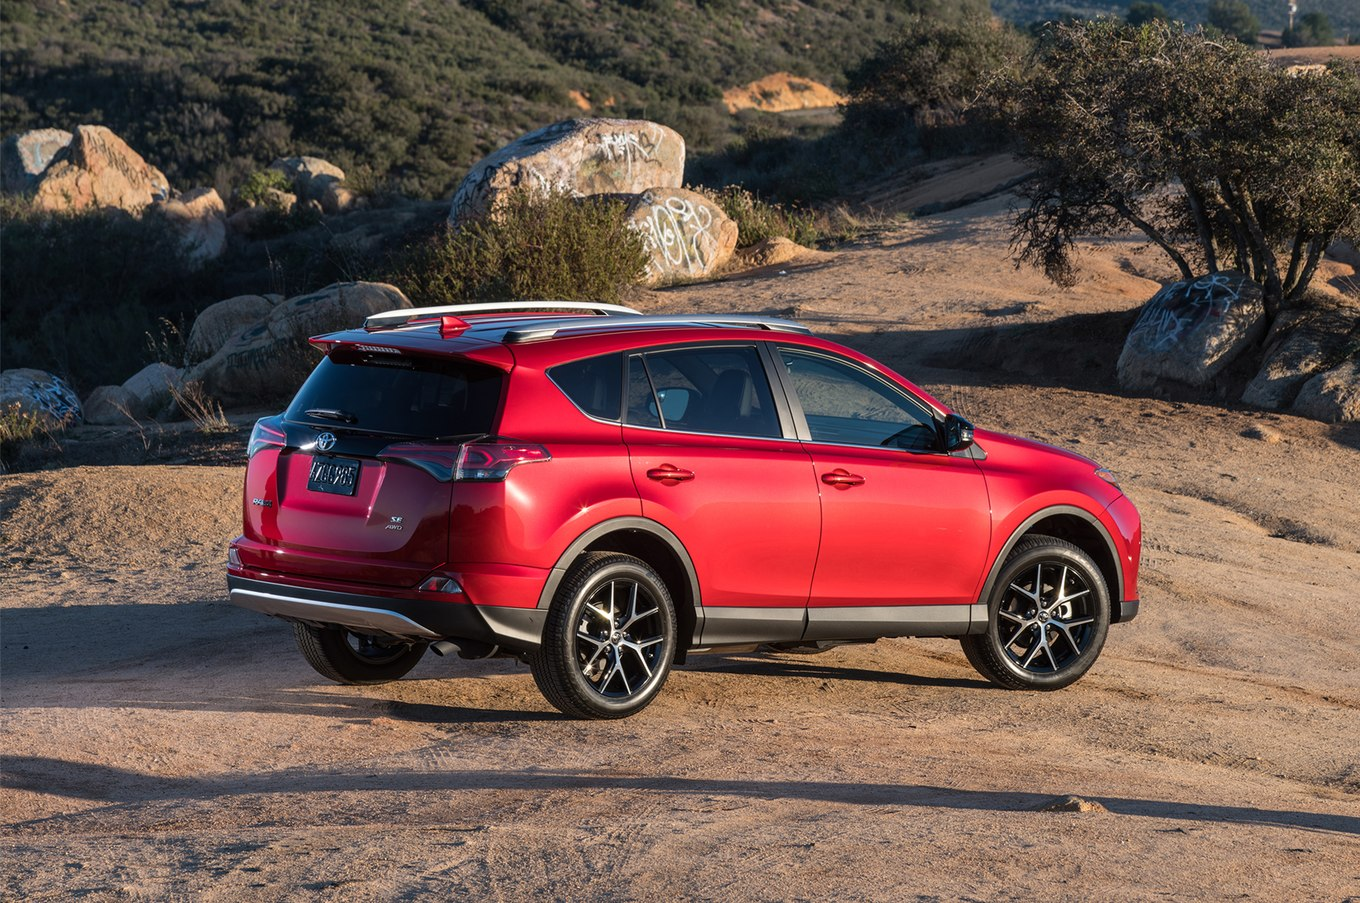 Toyota rav4 photo - 5